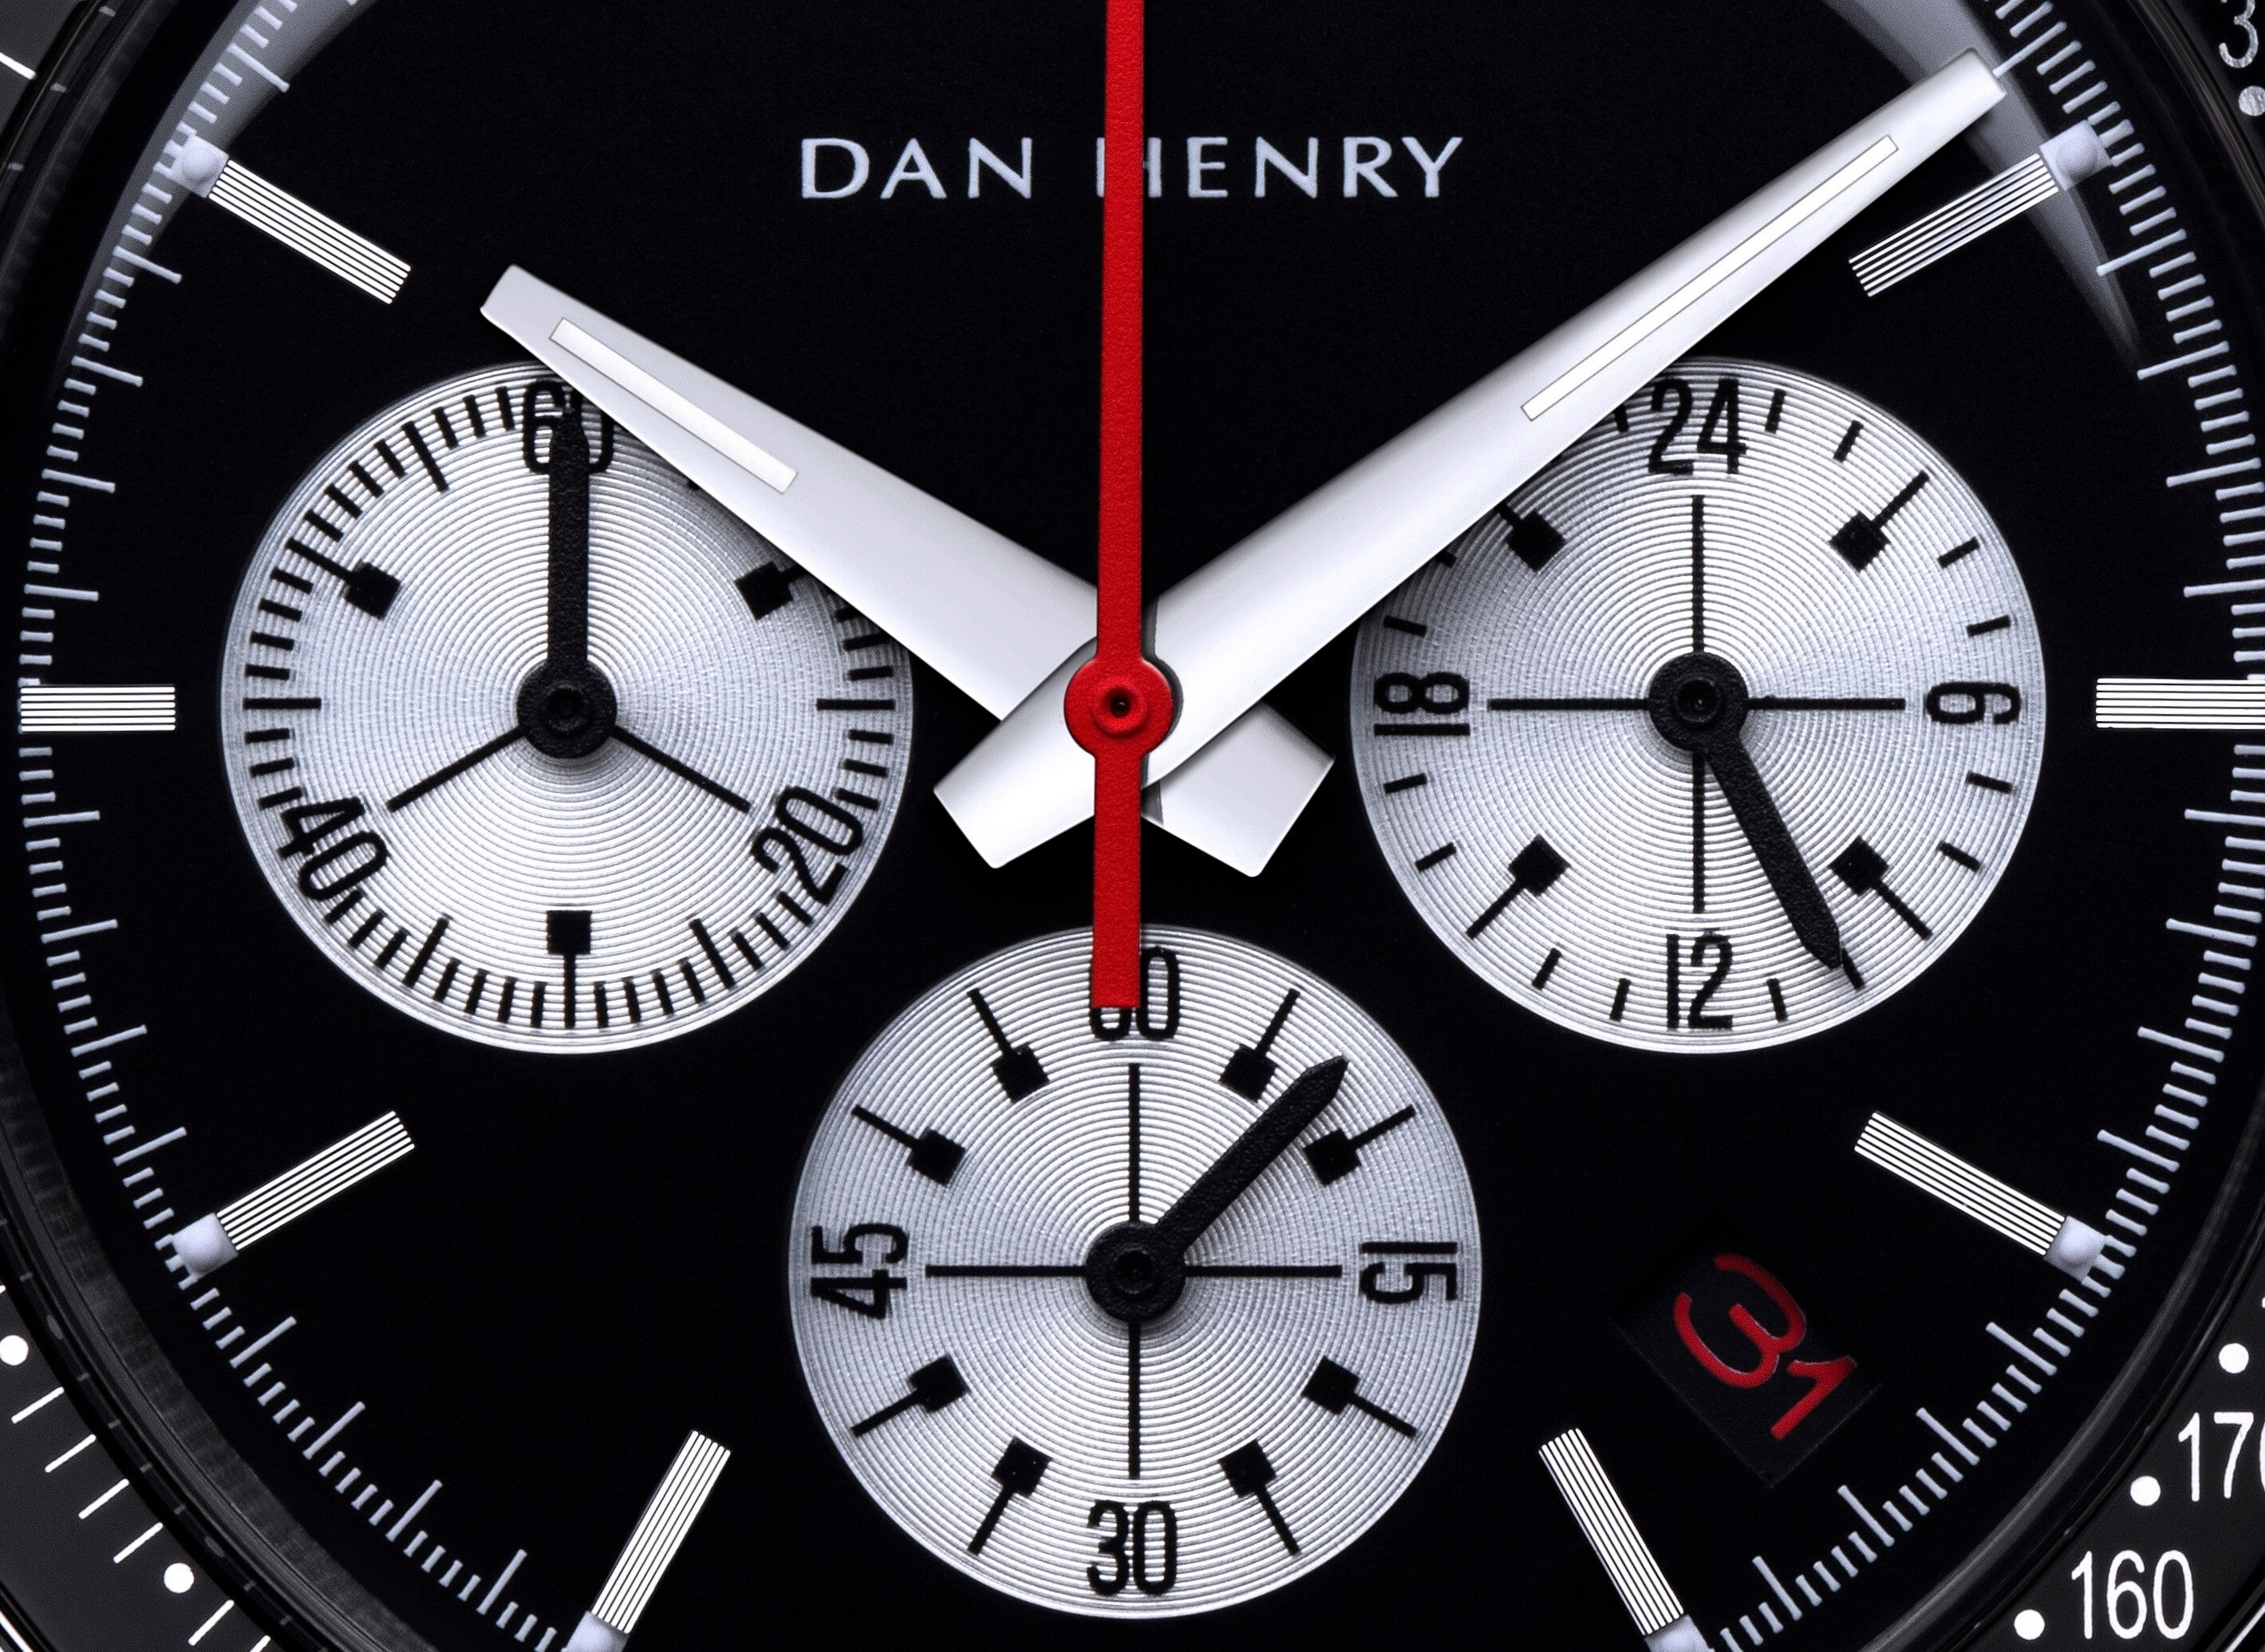 <h3>Dial</h3><p>Matte black evil panda with date and silver sub dials, silver index and red chrono central hand. Dauphine hands made to the best legibility</p>